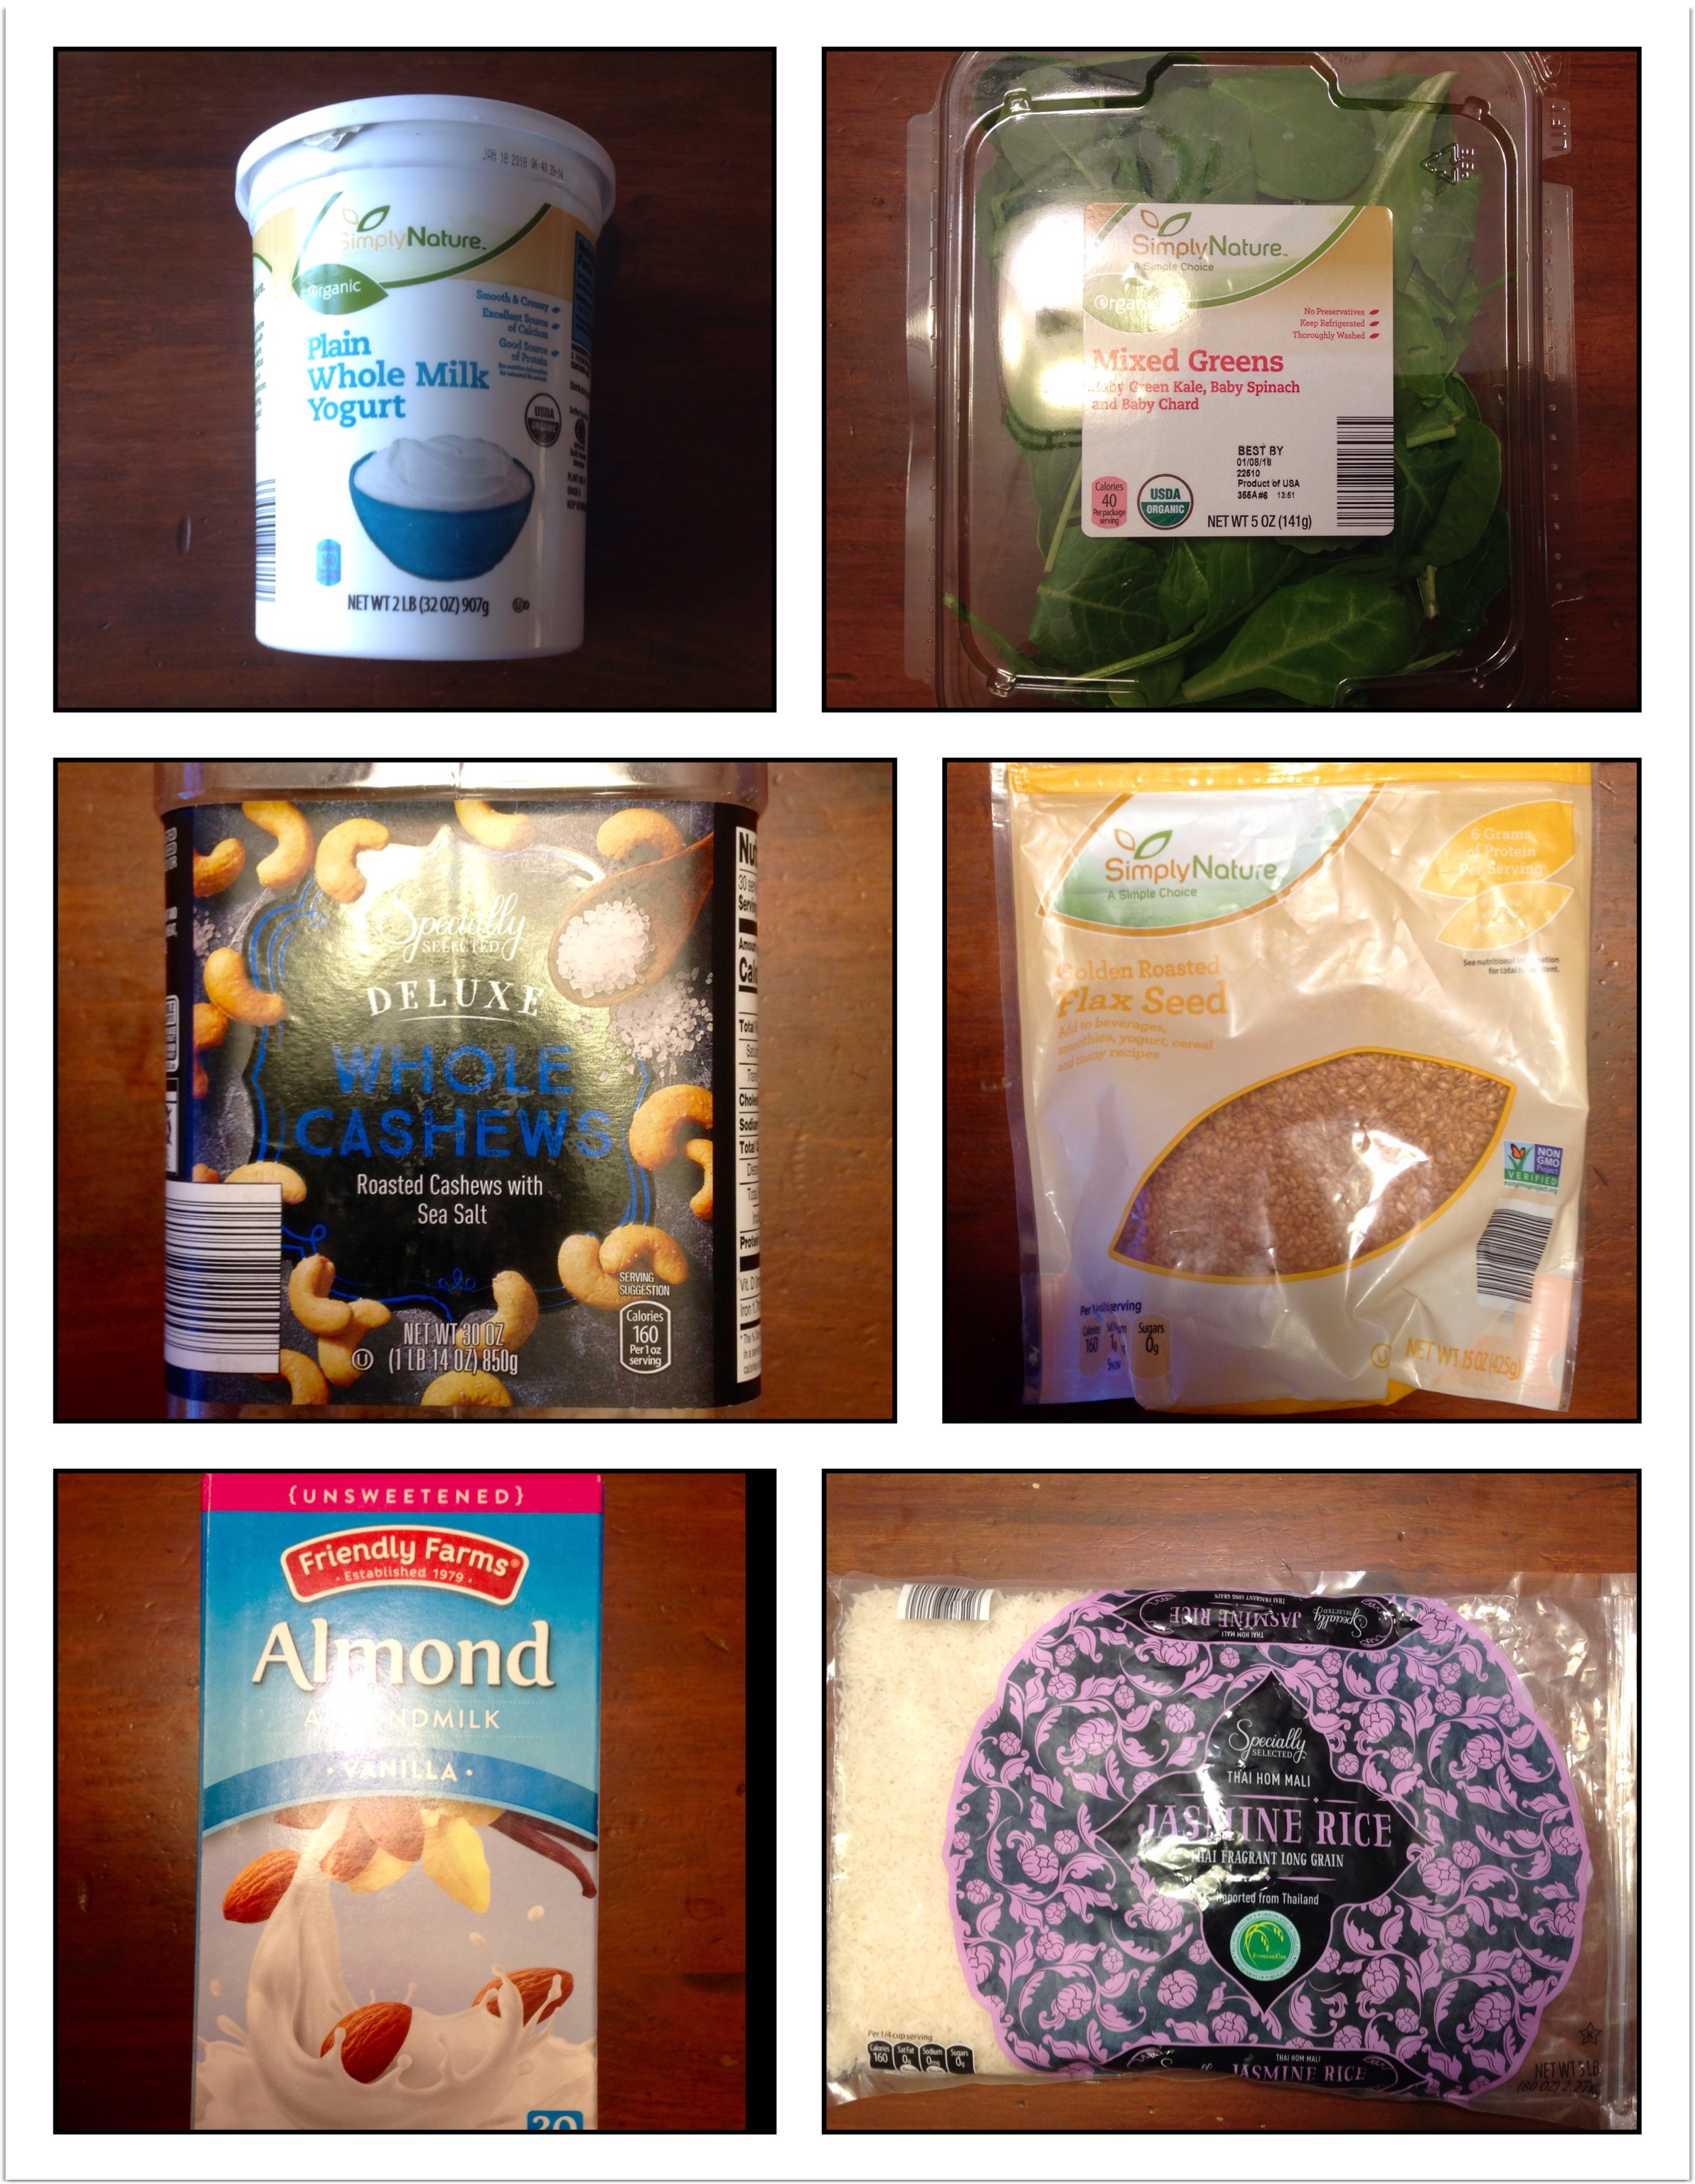 Deutsche Kuche Bread Aldi S Top 10 Eat Clean Food Items At A Healthy Price Shape